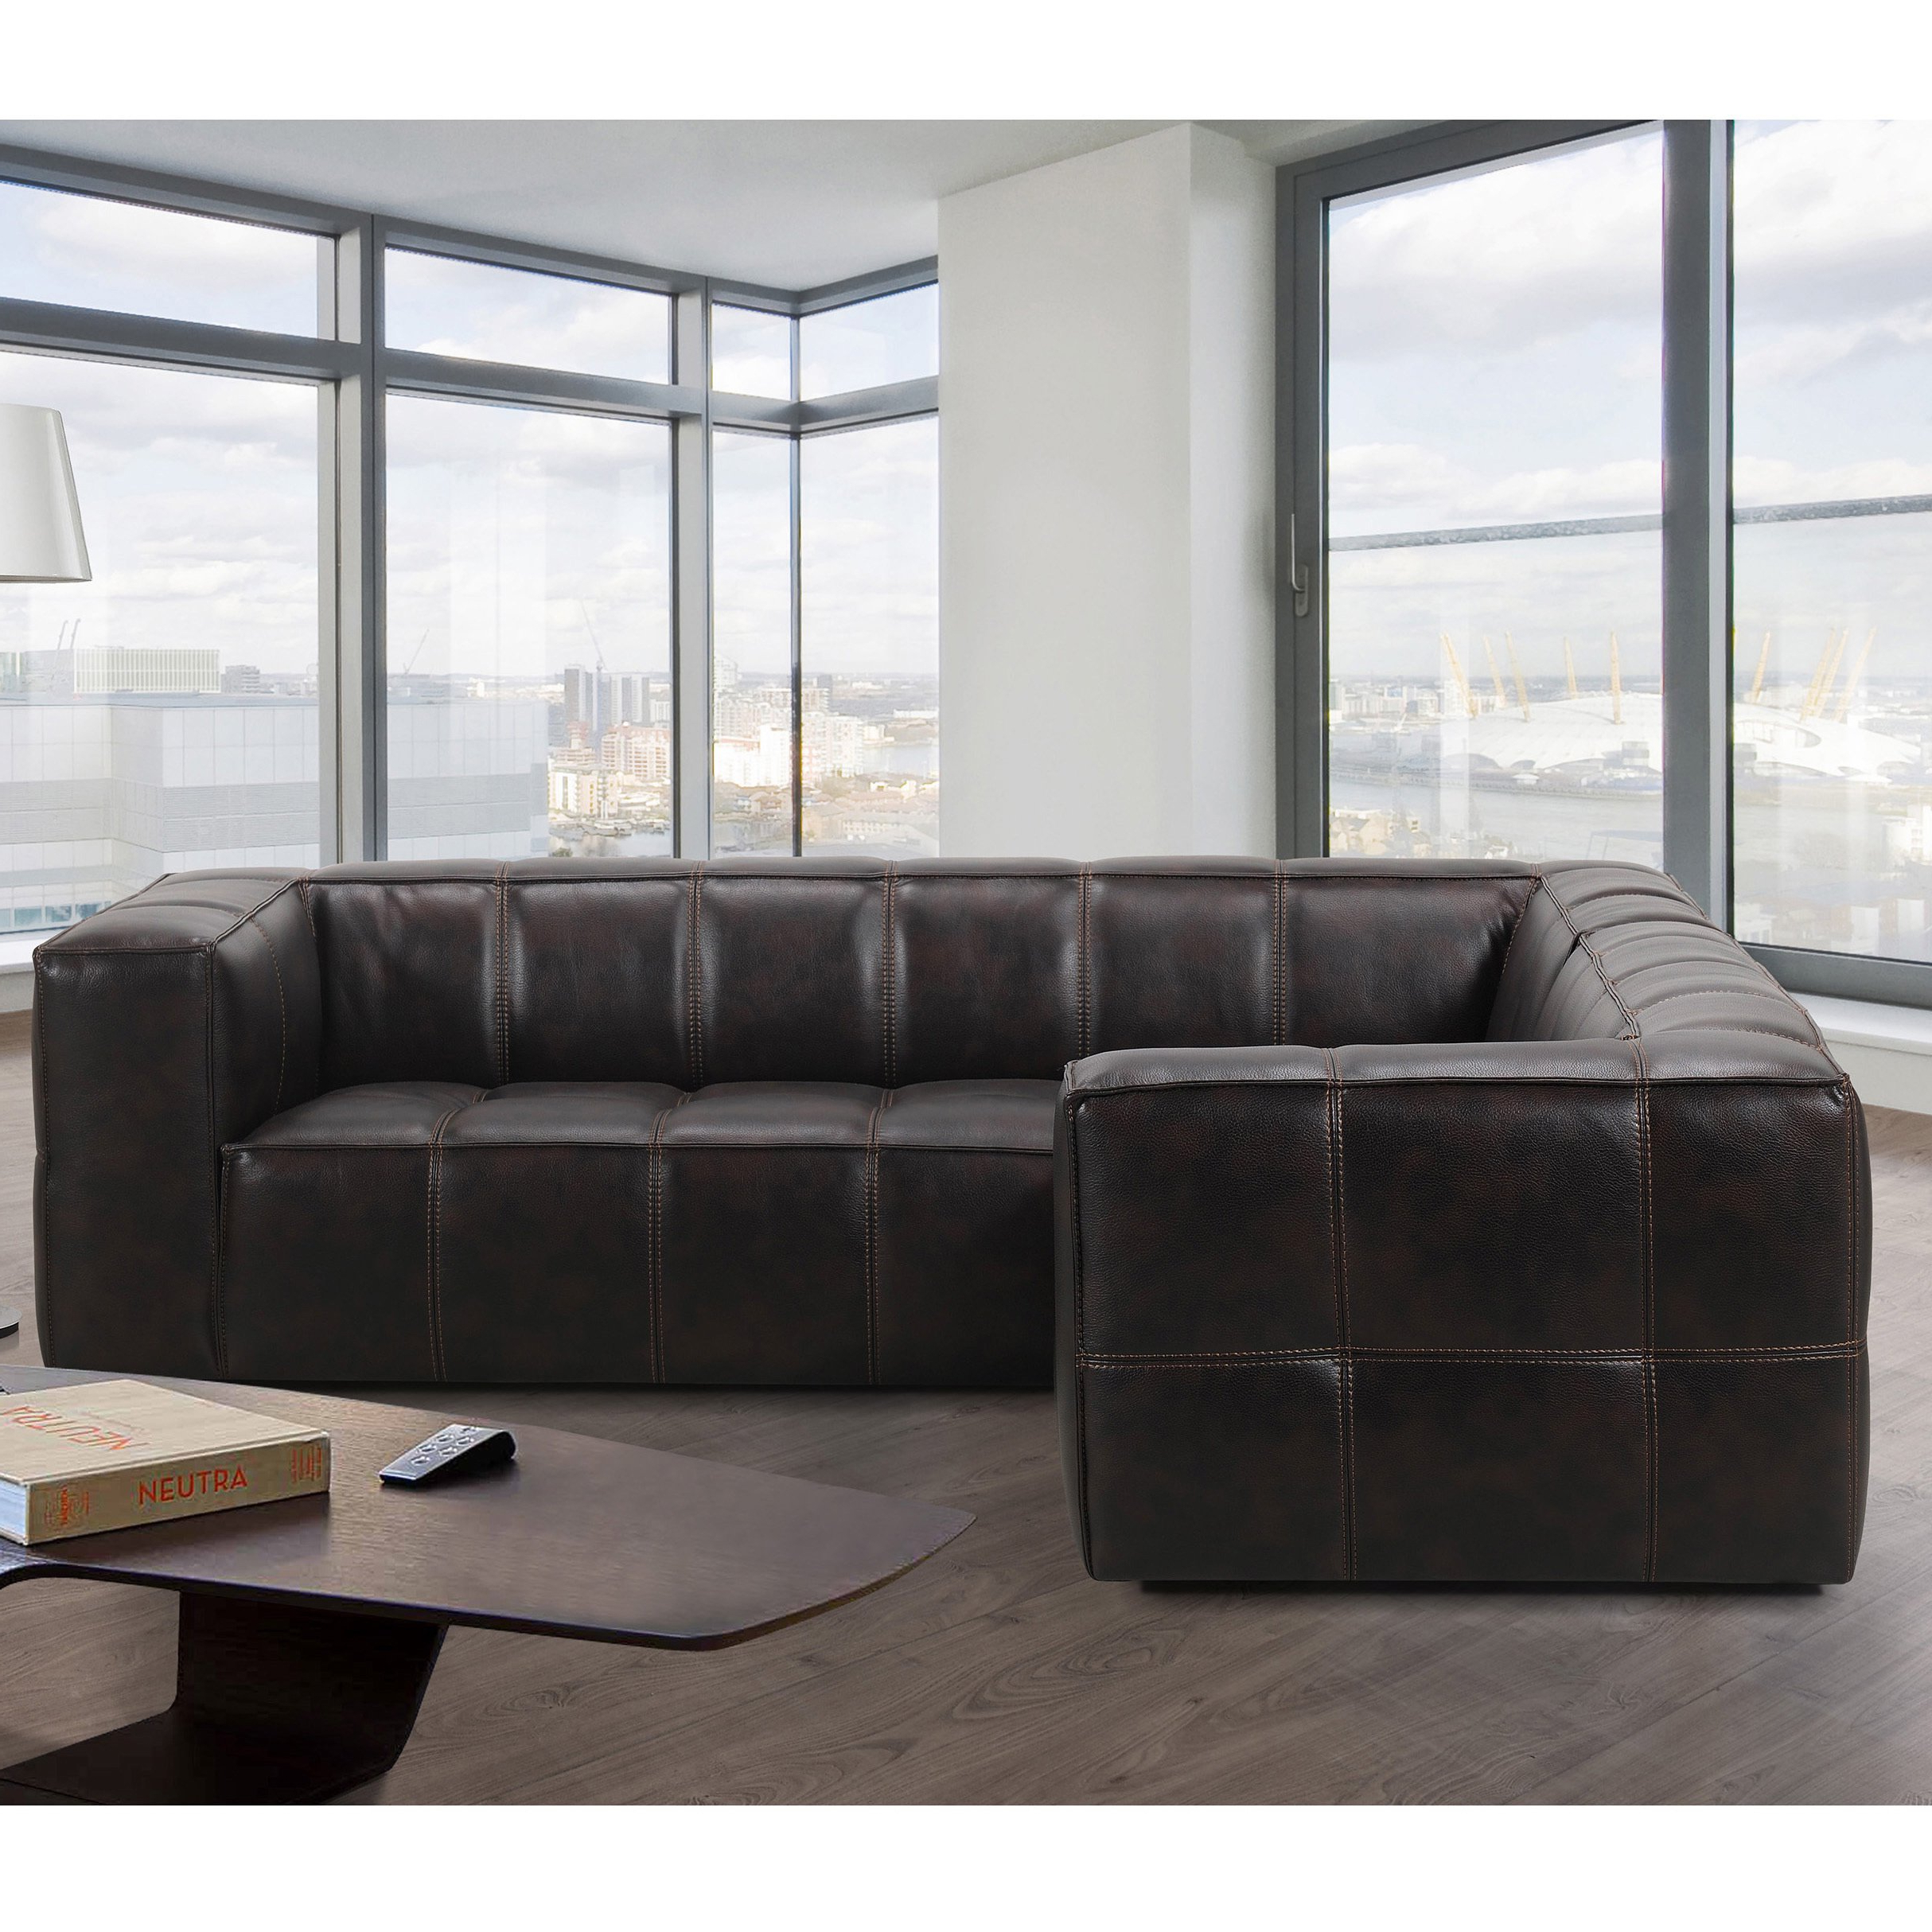 Latest Shop Athens Memory Foam Sectional Sofa – Free Shipping Today Within Mesa Foam 2 Piece Sectionals (View 7 of 20)